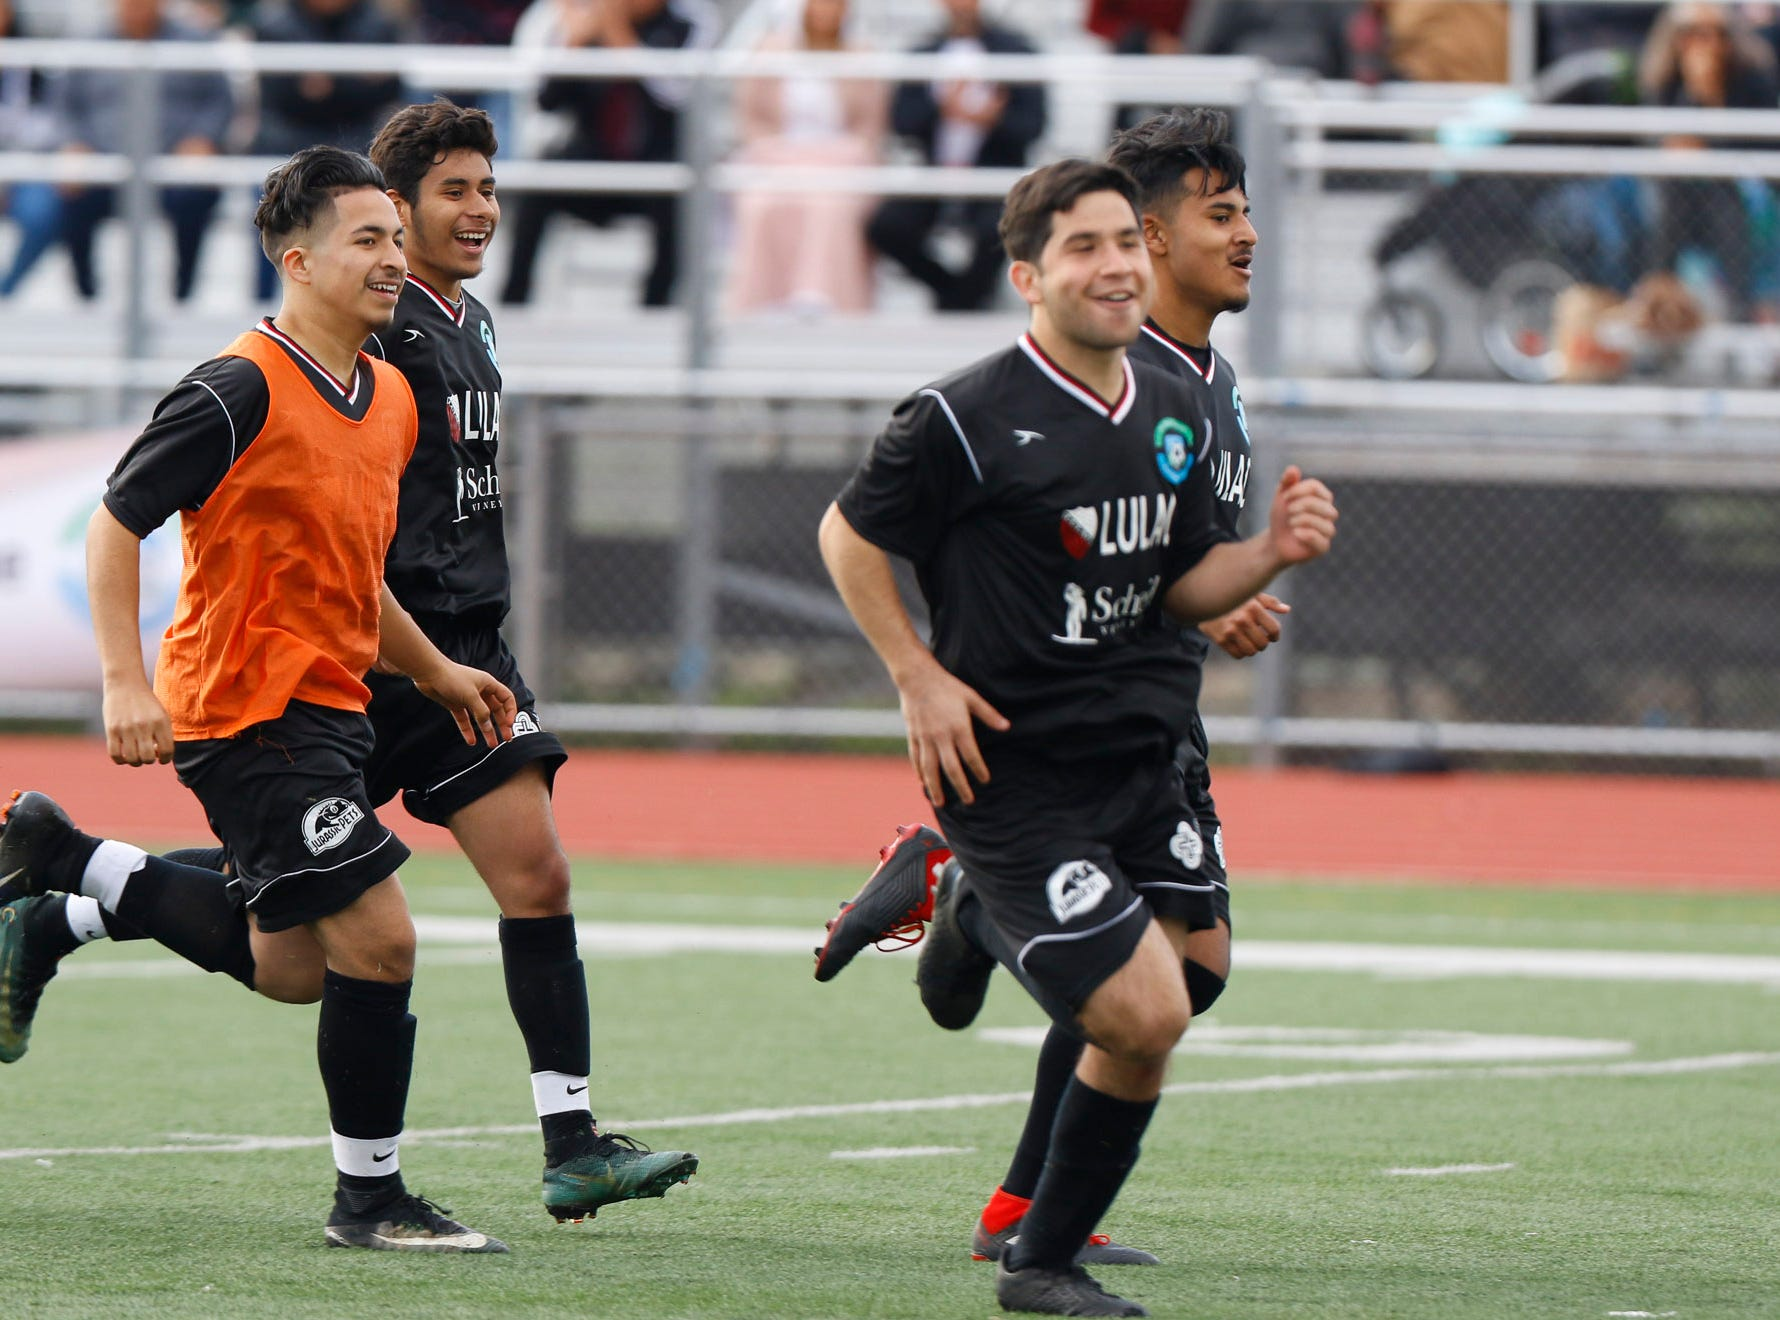 High schoolers from various schools in Monterey County participate in the annual Monterey County's Greatest All-Star Classic at Alisal High School on Sunday, March 10, 2019 in Salinas, Calif.